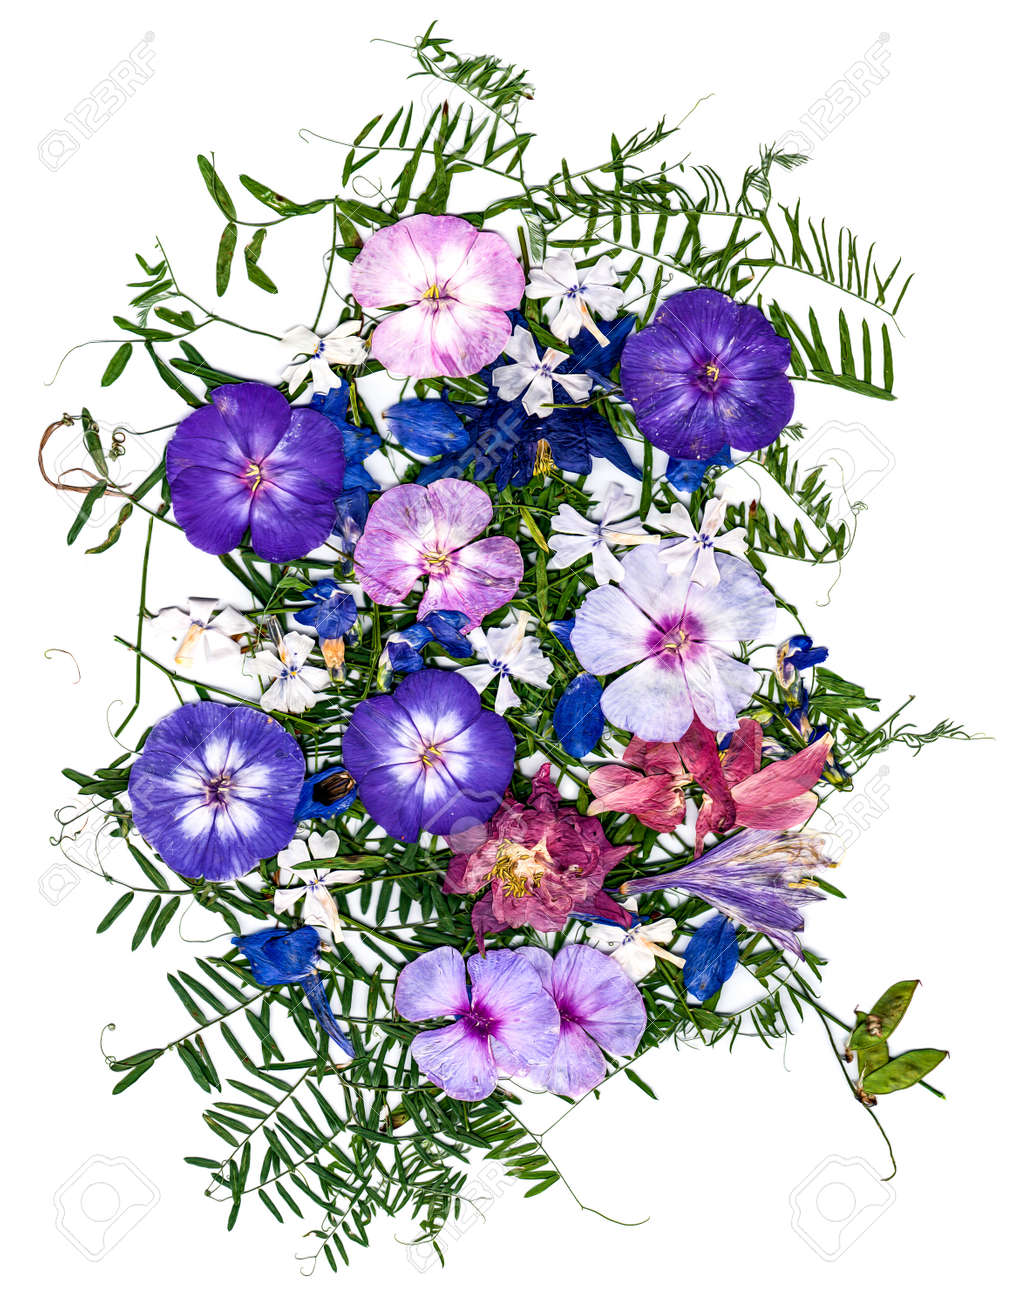 Application Bouquet Of Dry Flowers Stock Photo, Picture And Royalty ...